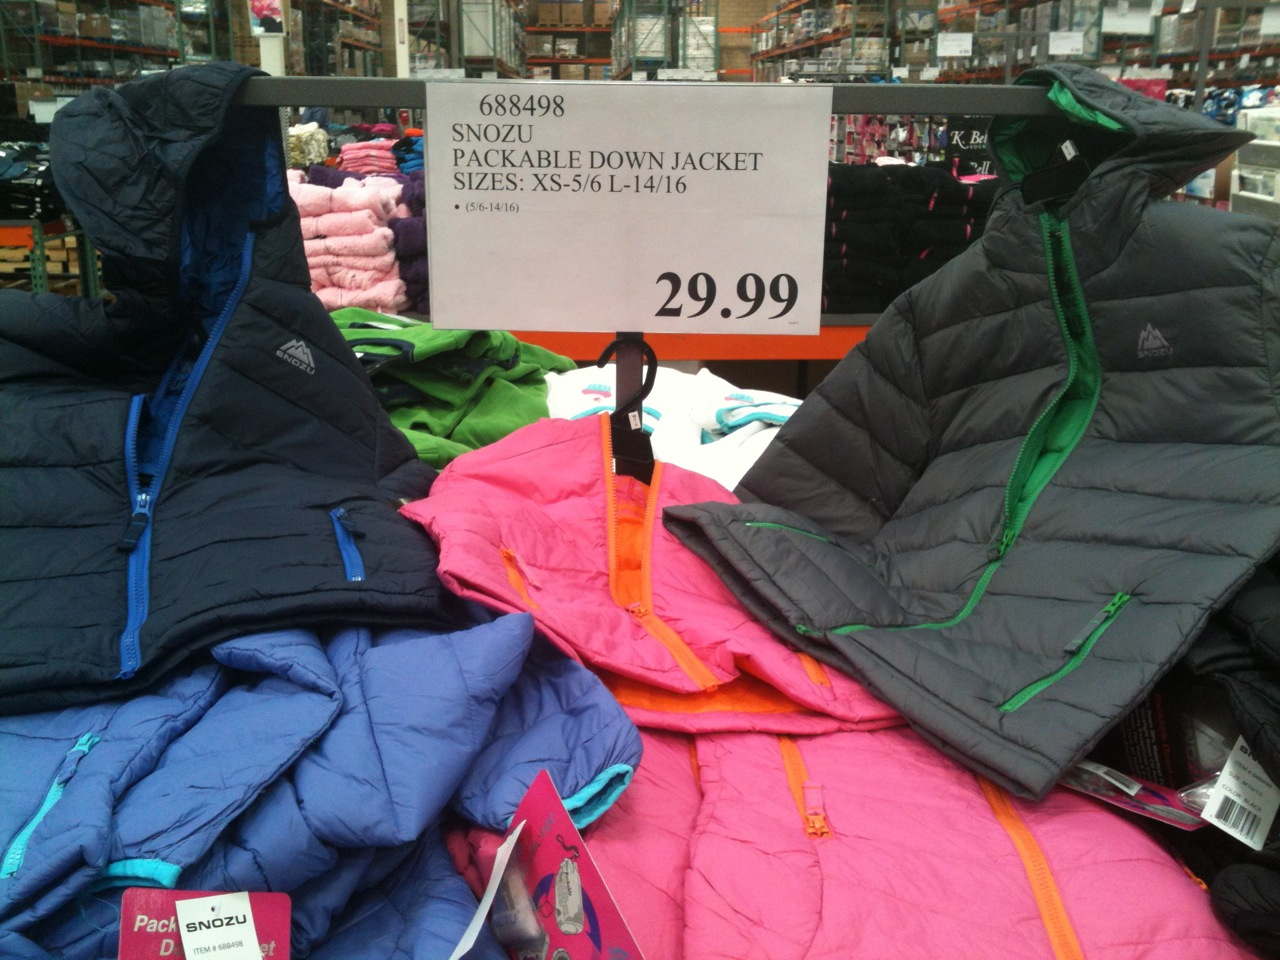 a988bce6801 The Diminutive Review  A great packable down jacket for a good price...